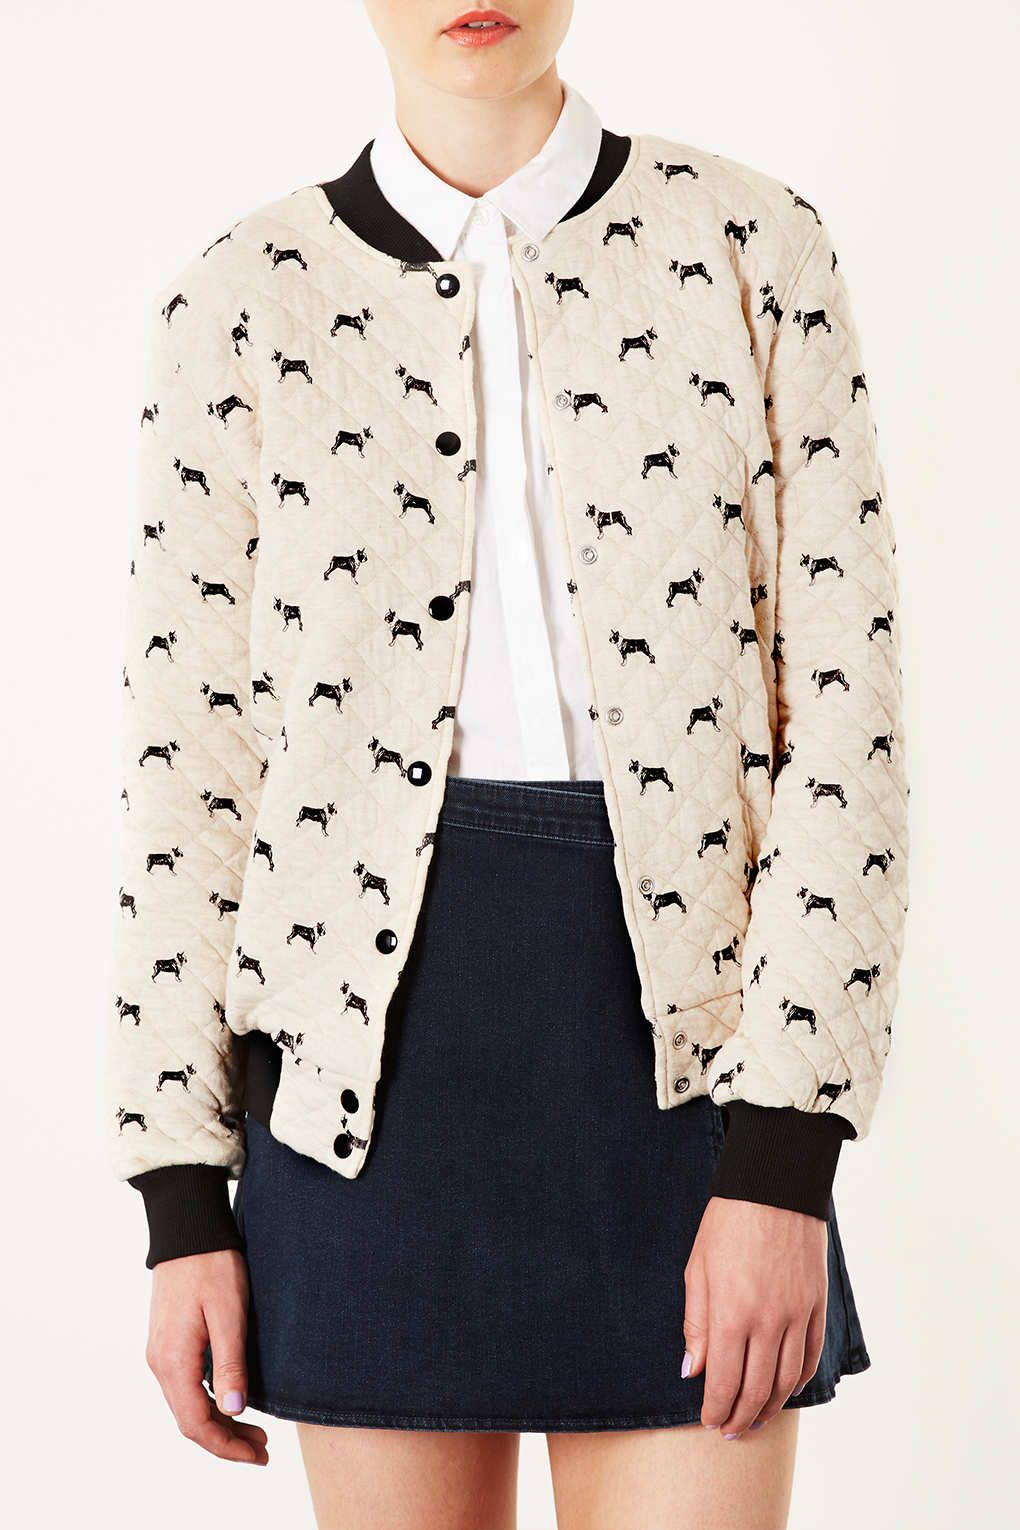 Topshop Indonesia Closure Quilted Bomber Jacket Quilted Bomber Jackets [ 1530 x 1020 Pixel ]